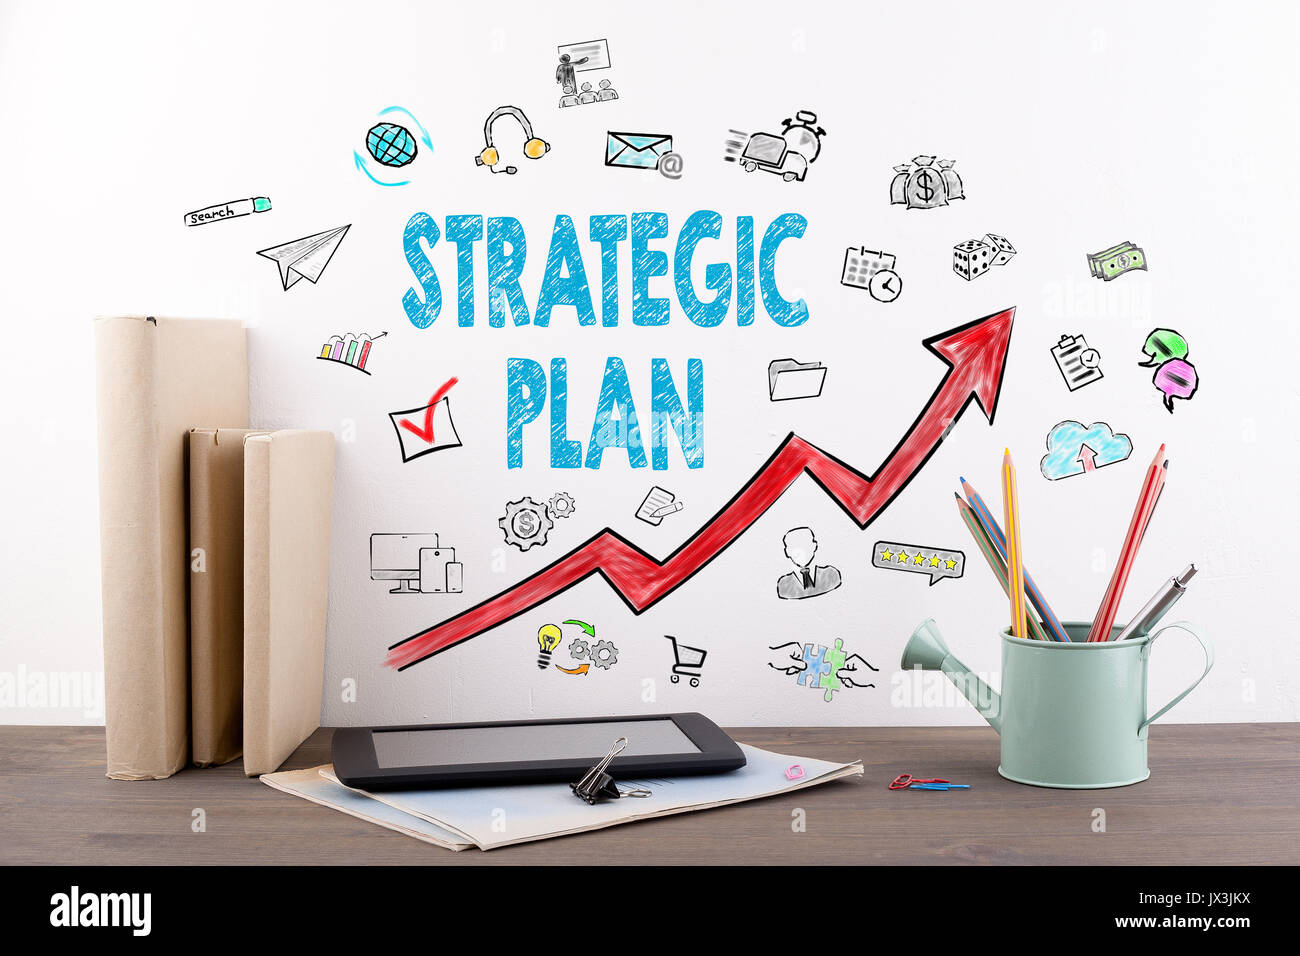 Strategic Plan. Books and stationery on a wooden office desk. - Stock Image